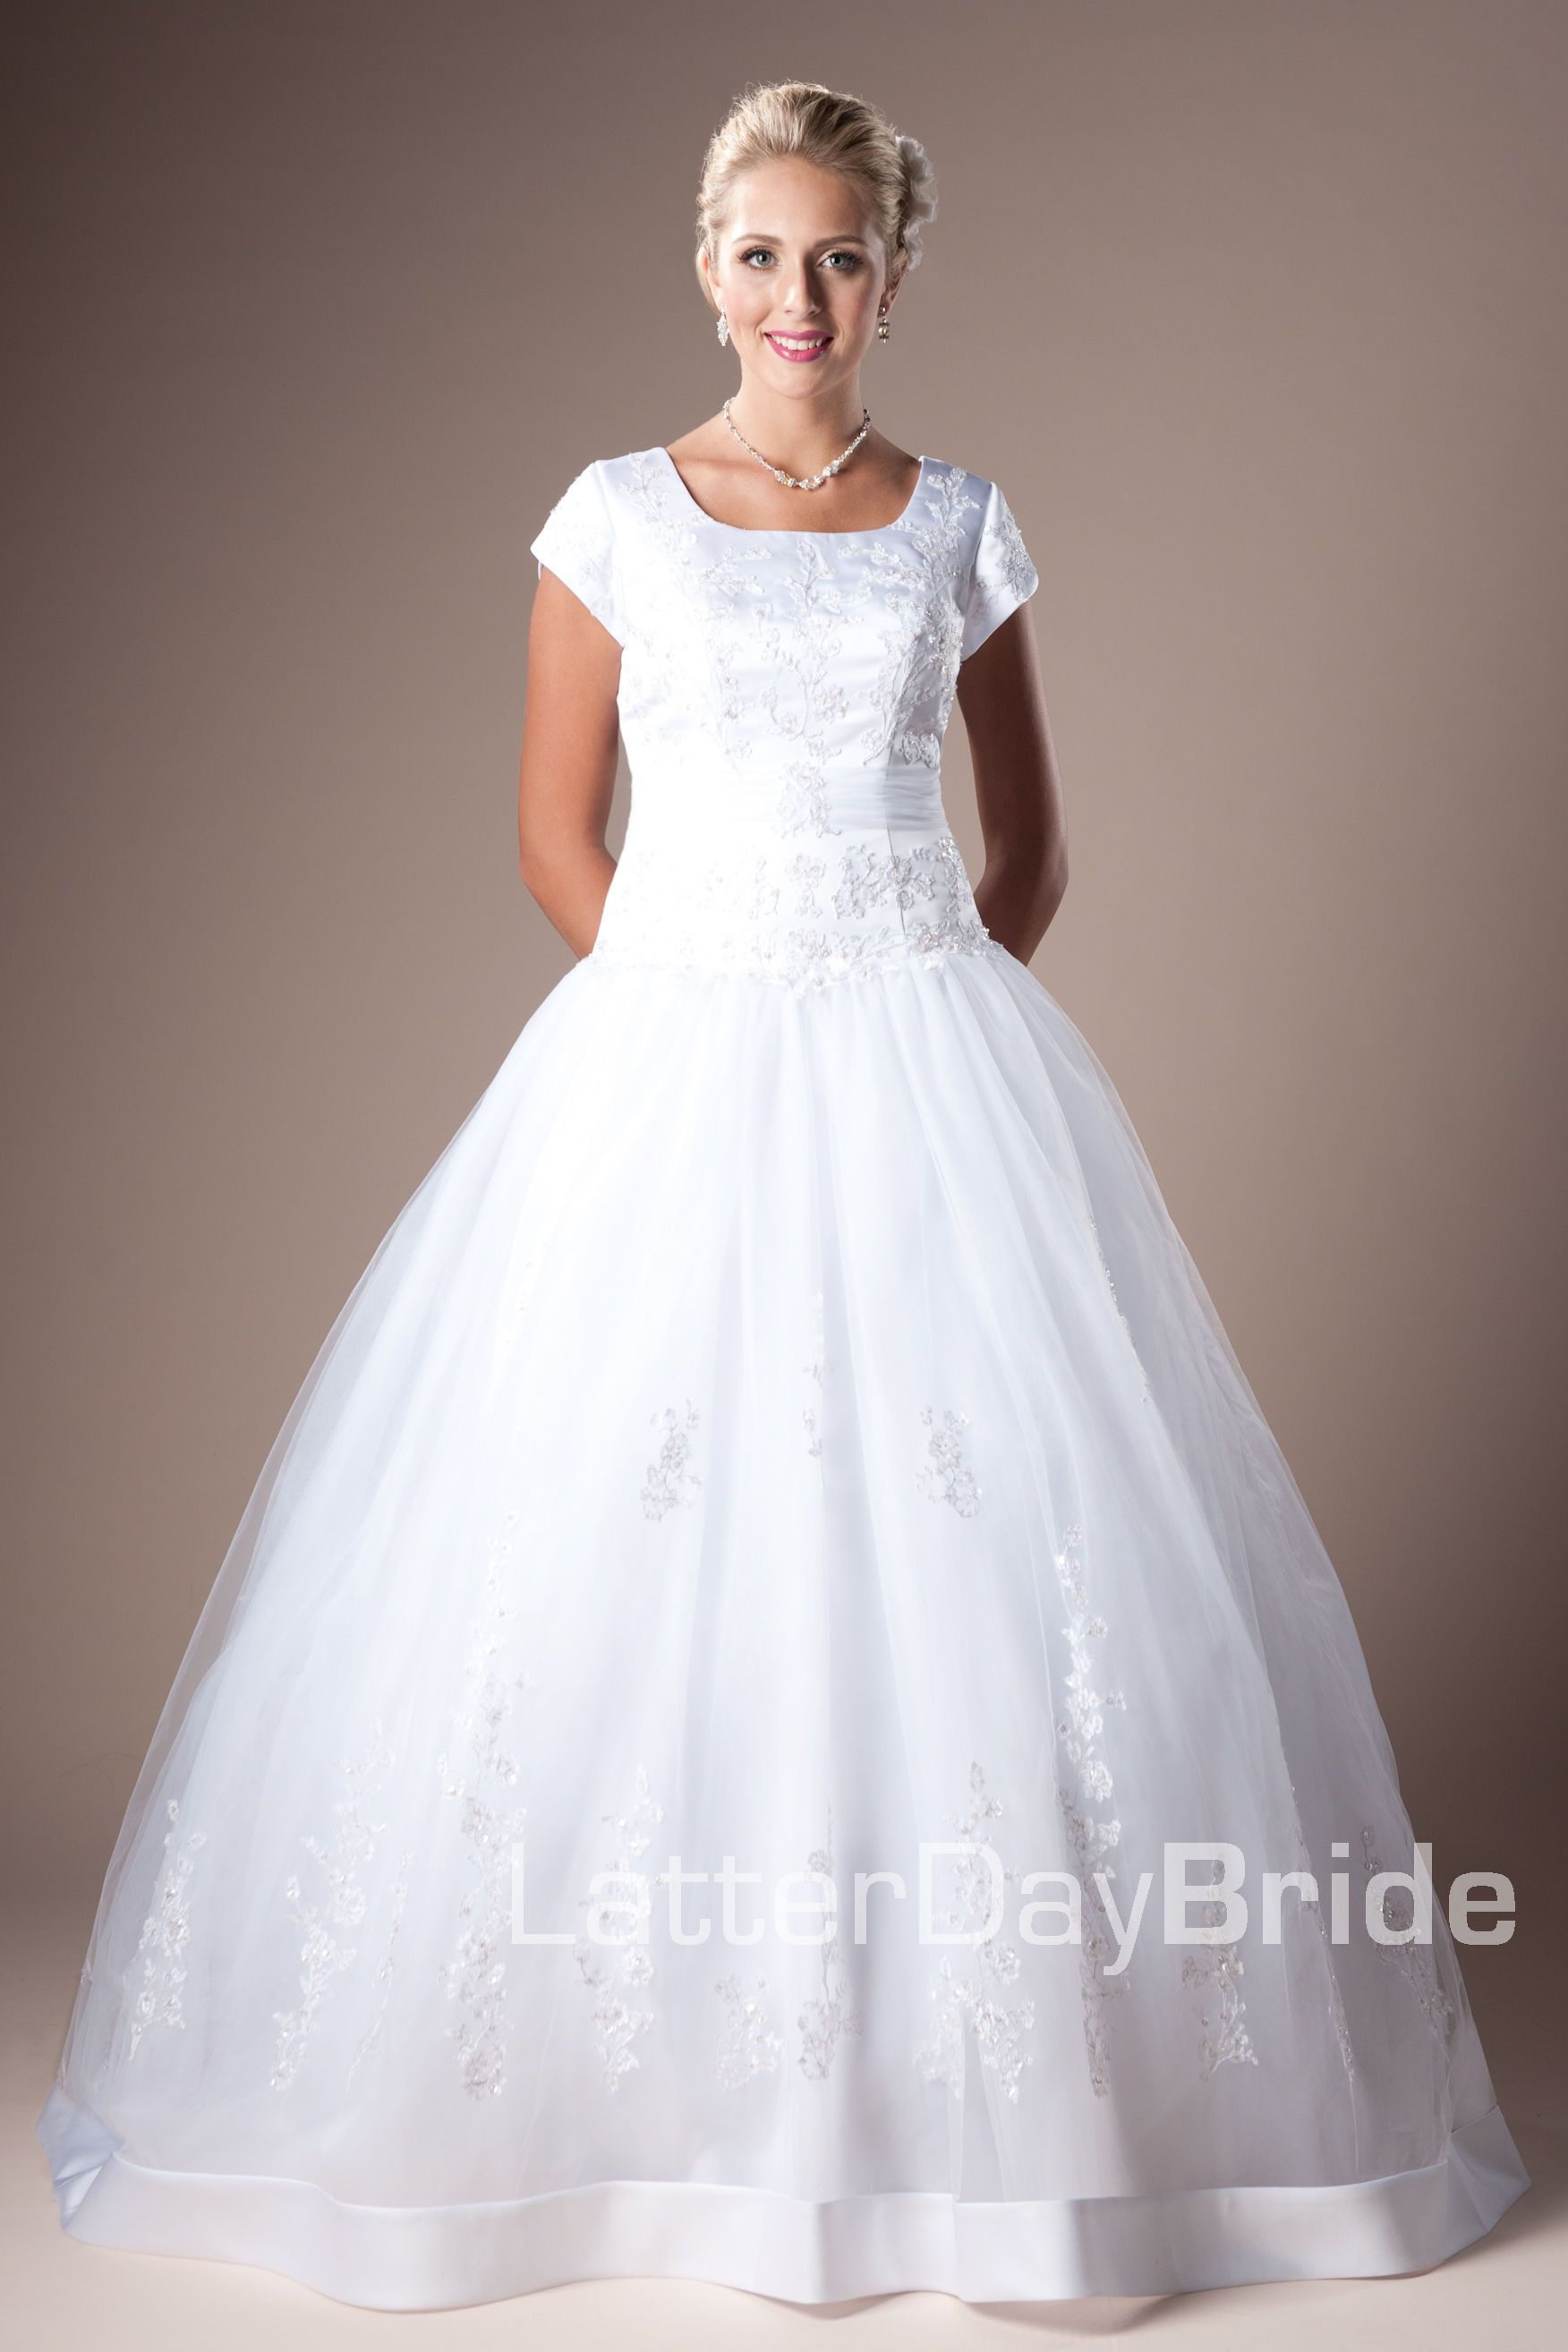 Modest wedding dress new haven latterdaybride prom for Mormon temple wedding dresses